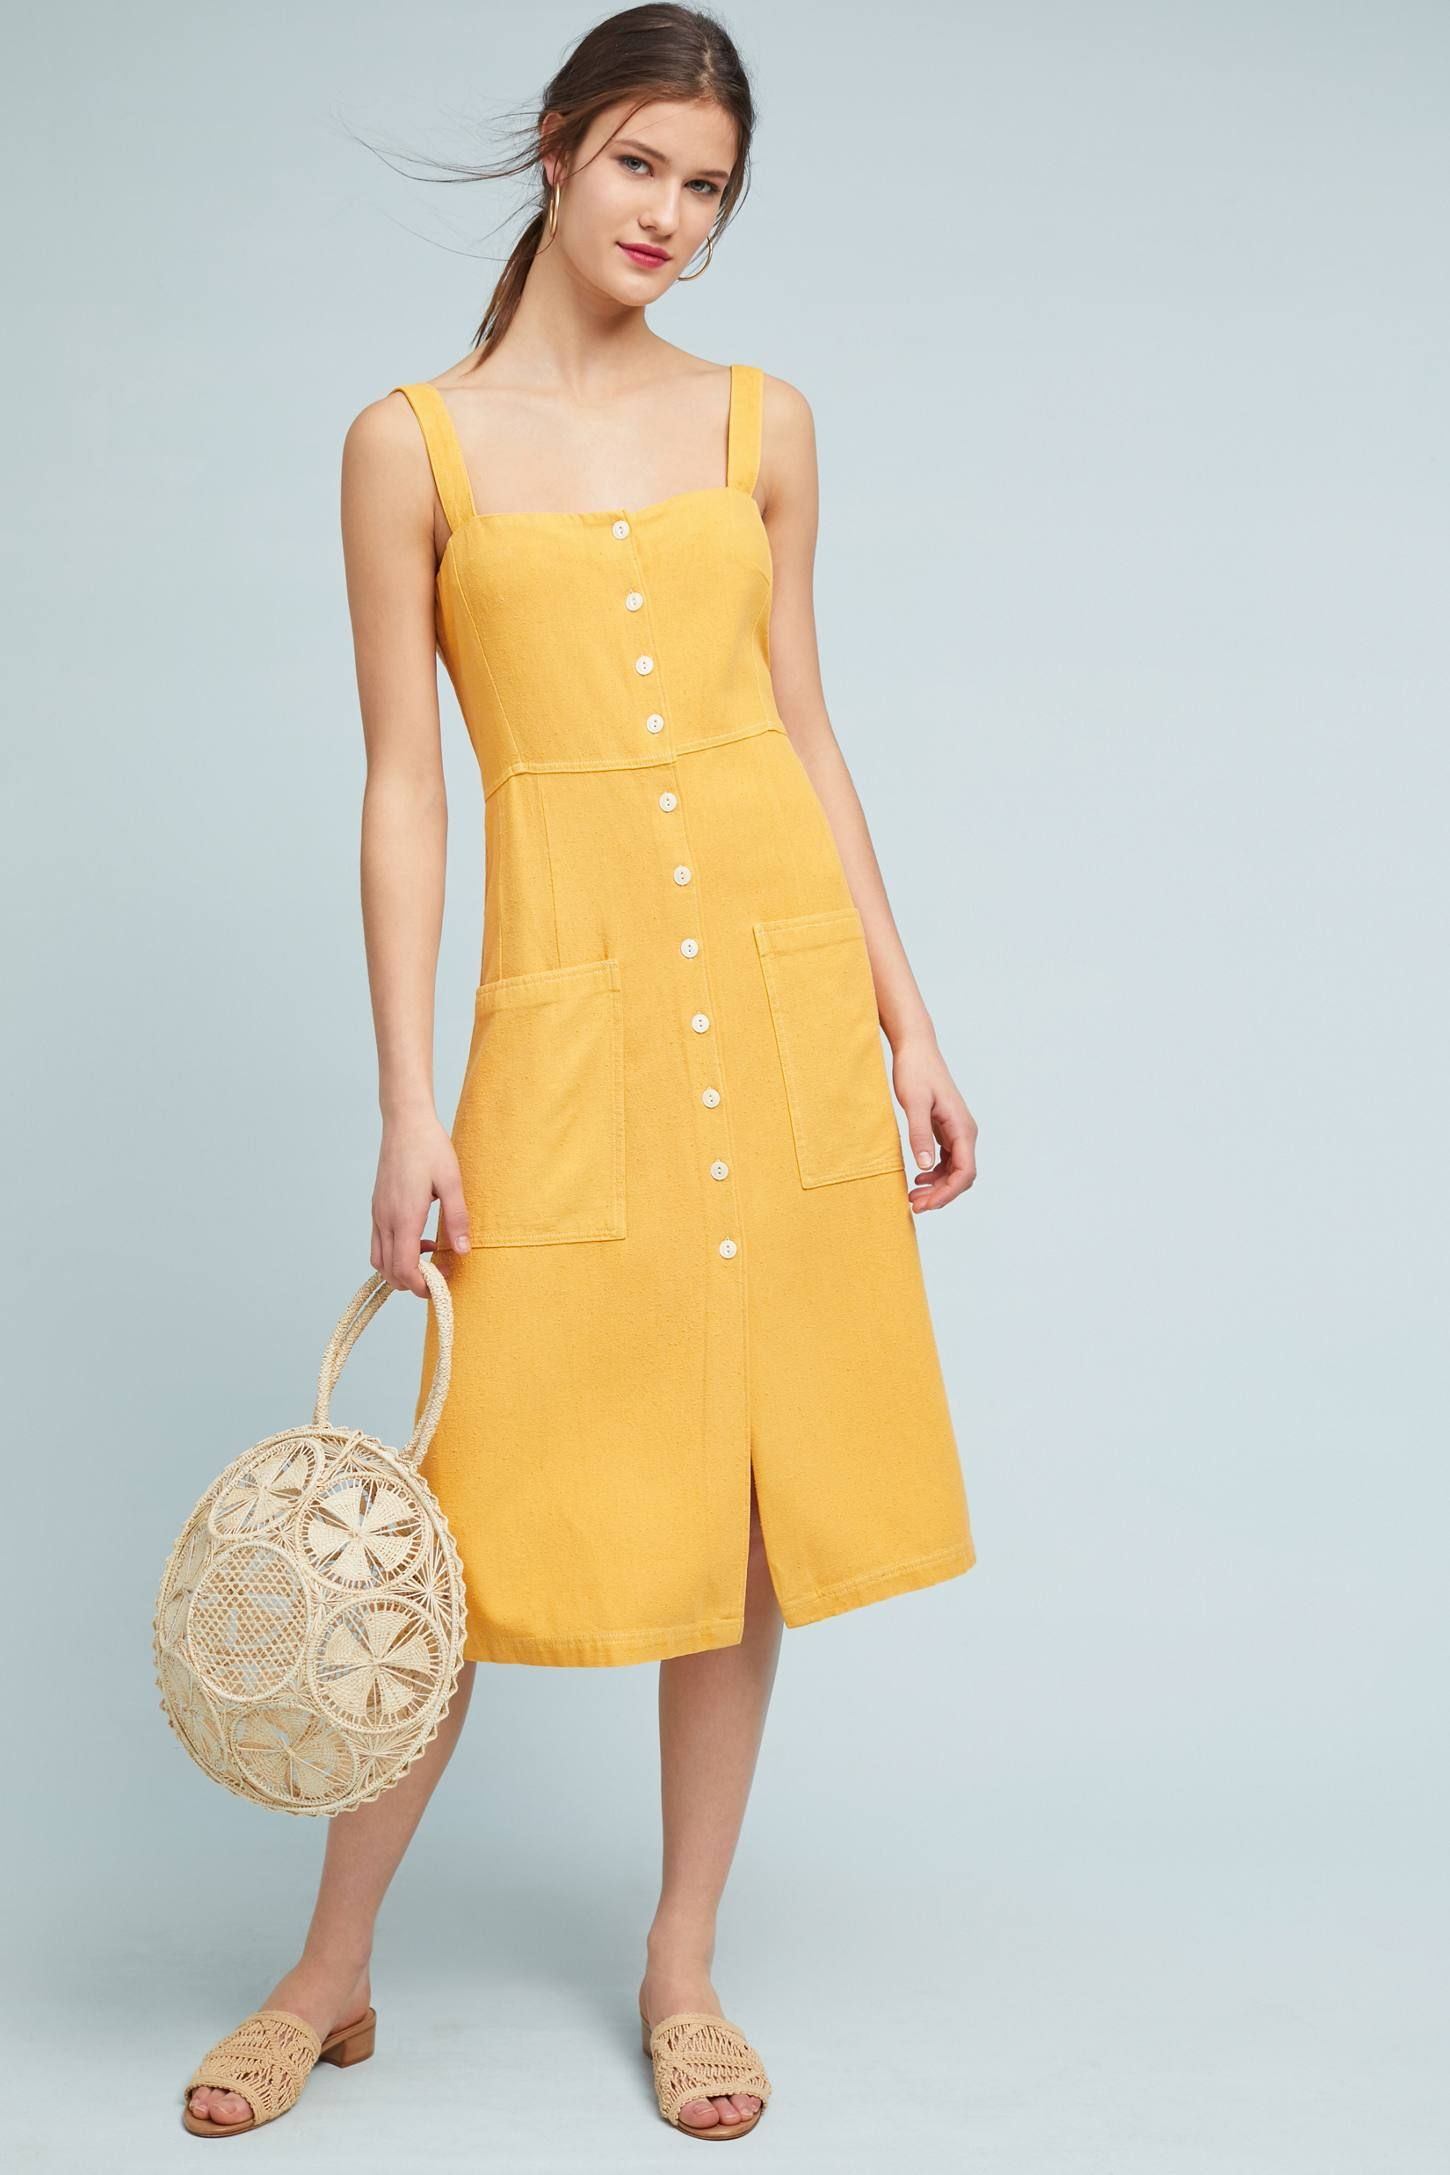 Levi S Silk Sundress Clothes Flowy Dress Casual Yellow Fashion